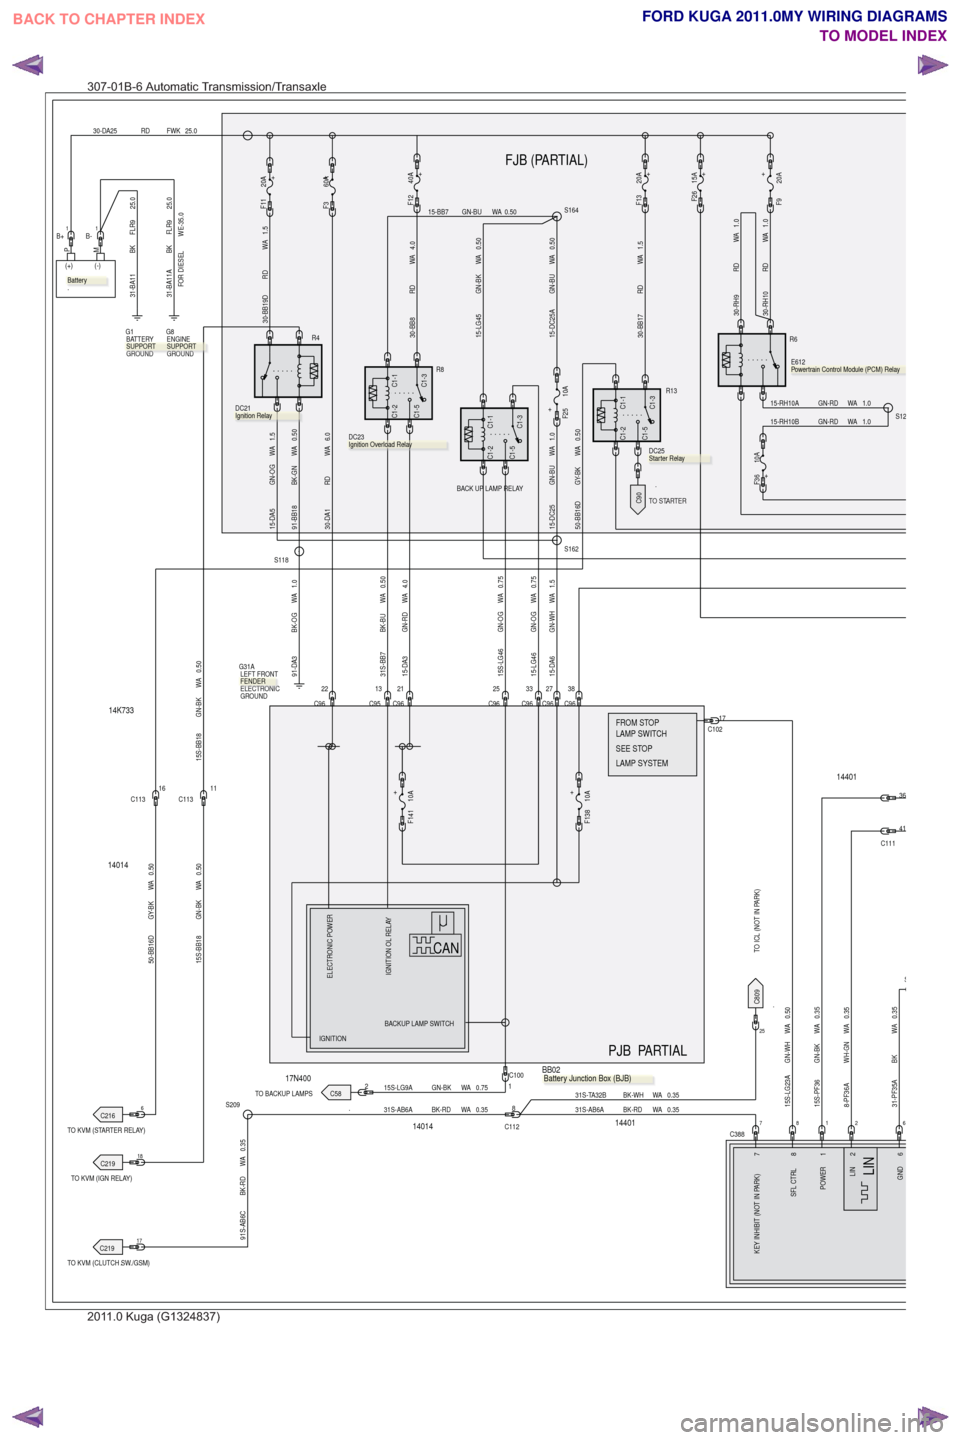 200 4r transmission lock up wiring diagram